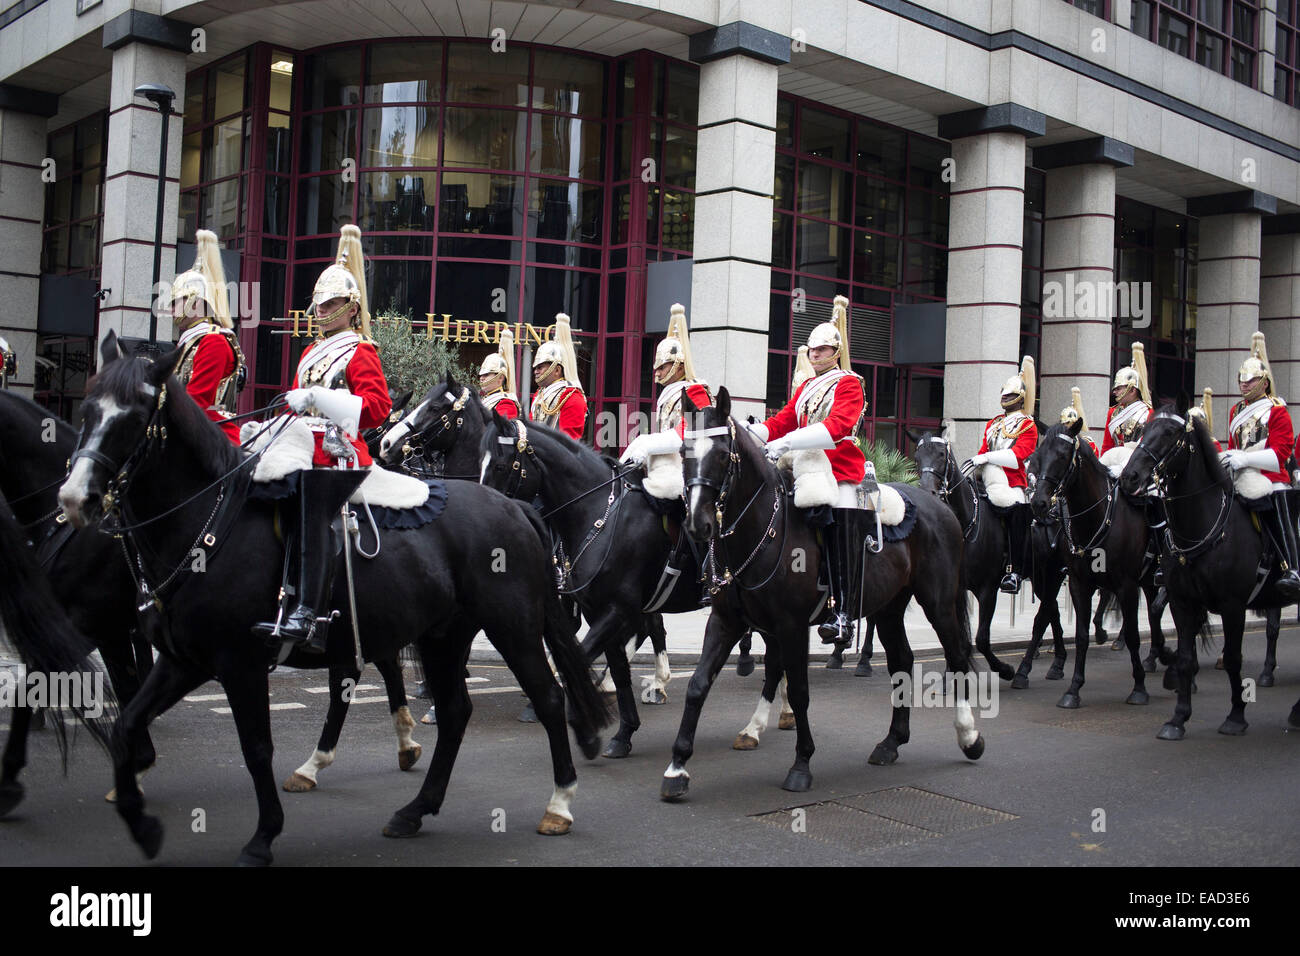 Life Guards on horseback after The Lord Mayor's Show, one of the longest-established annual events, in the City - Stock Image